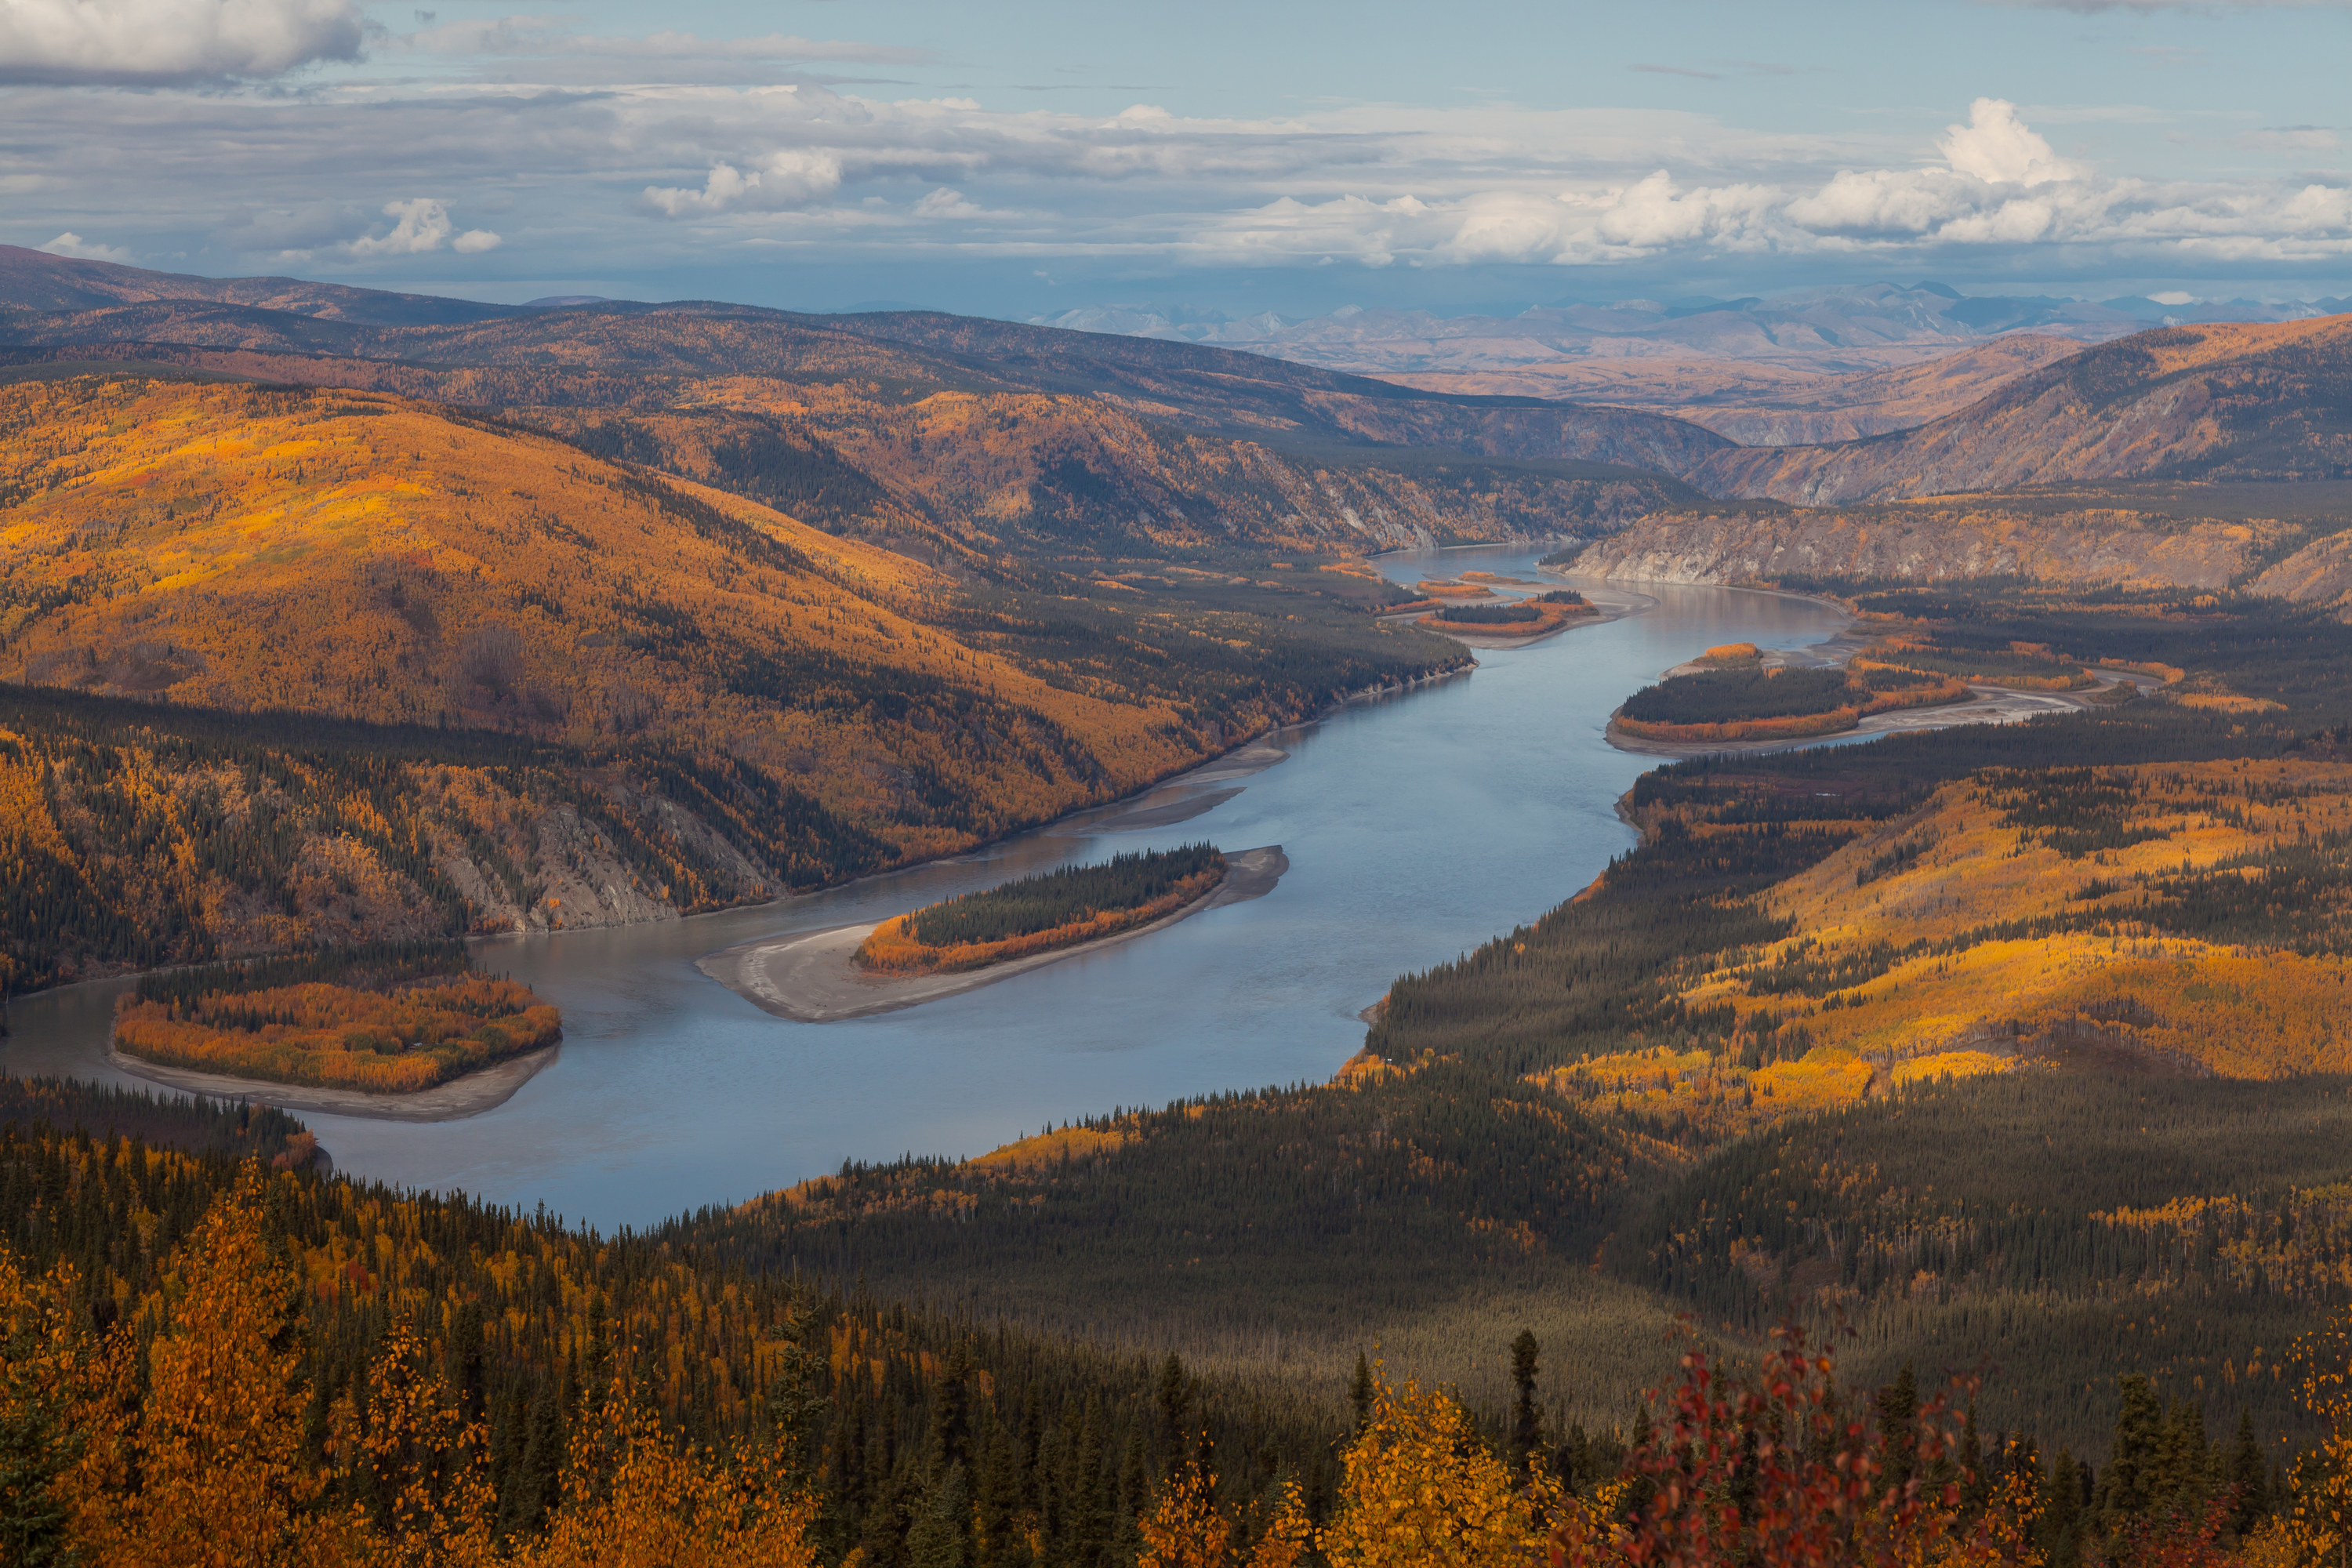 View from the Midnight Dome over the Yukon River near Dawson City, Yukon Territory